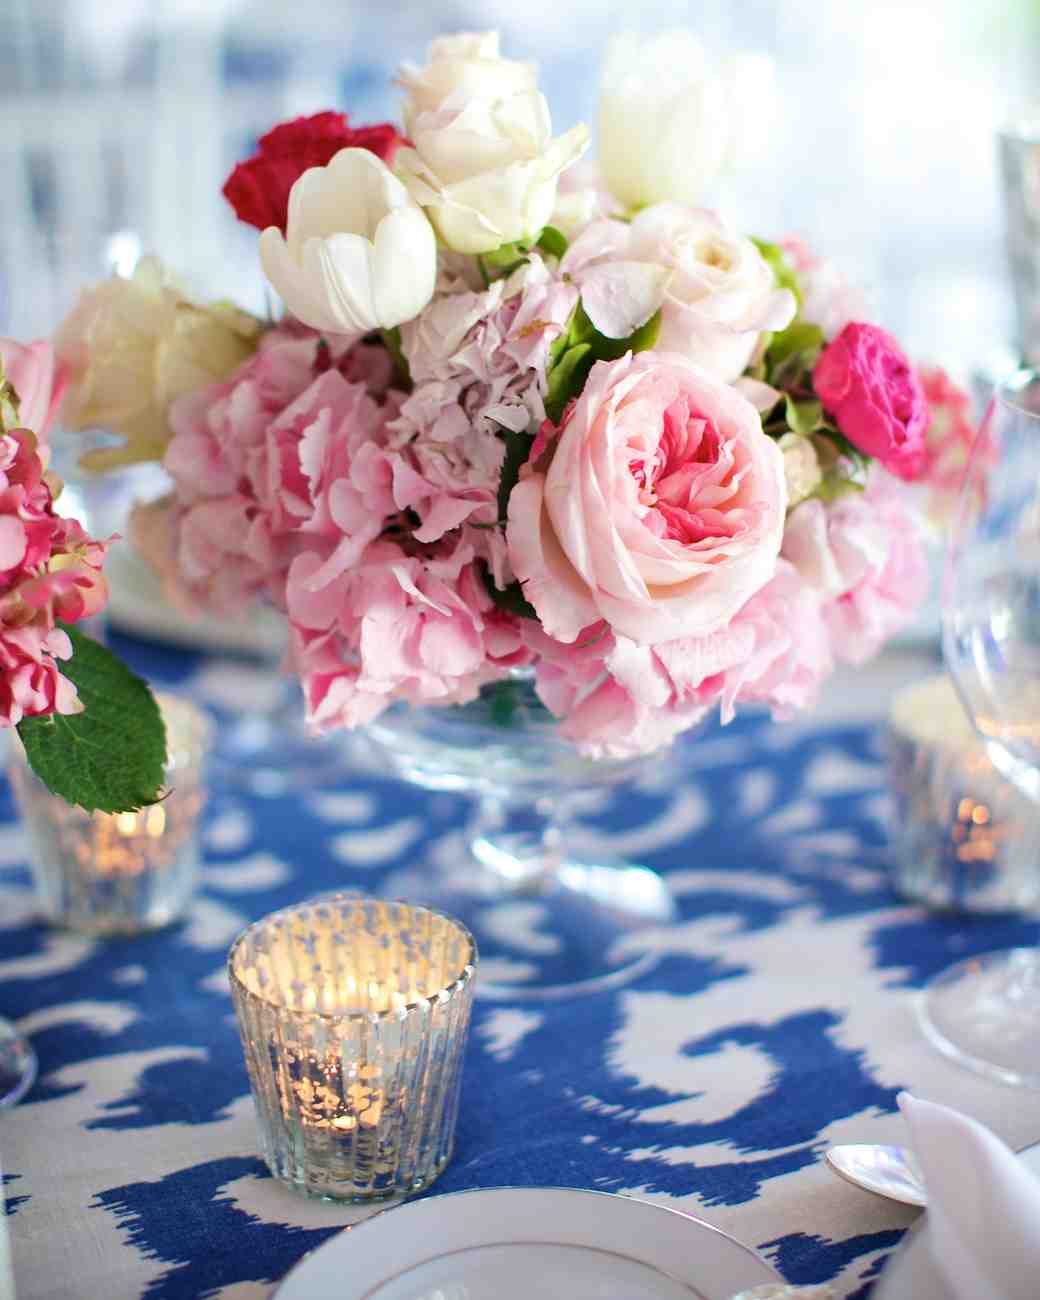 7 Décor Ideas For A Valentine's Day Party